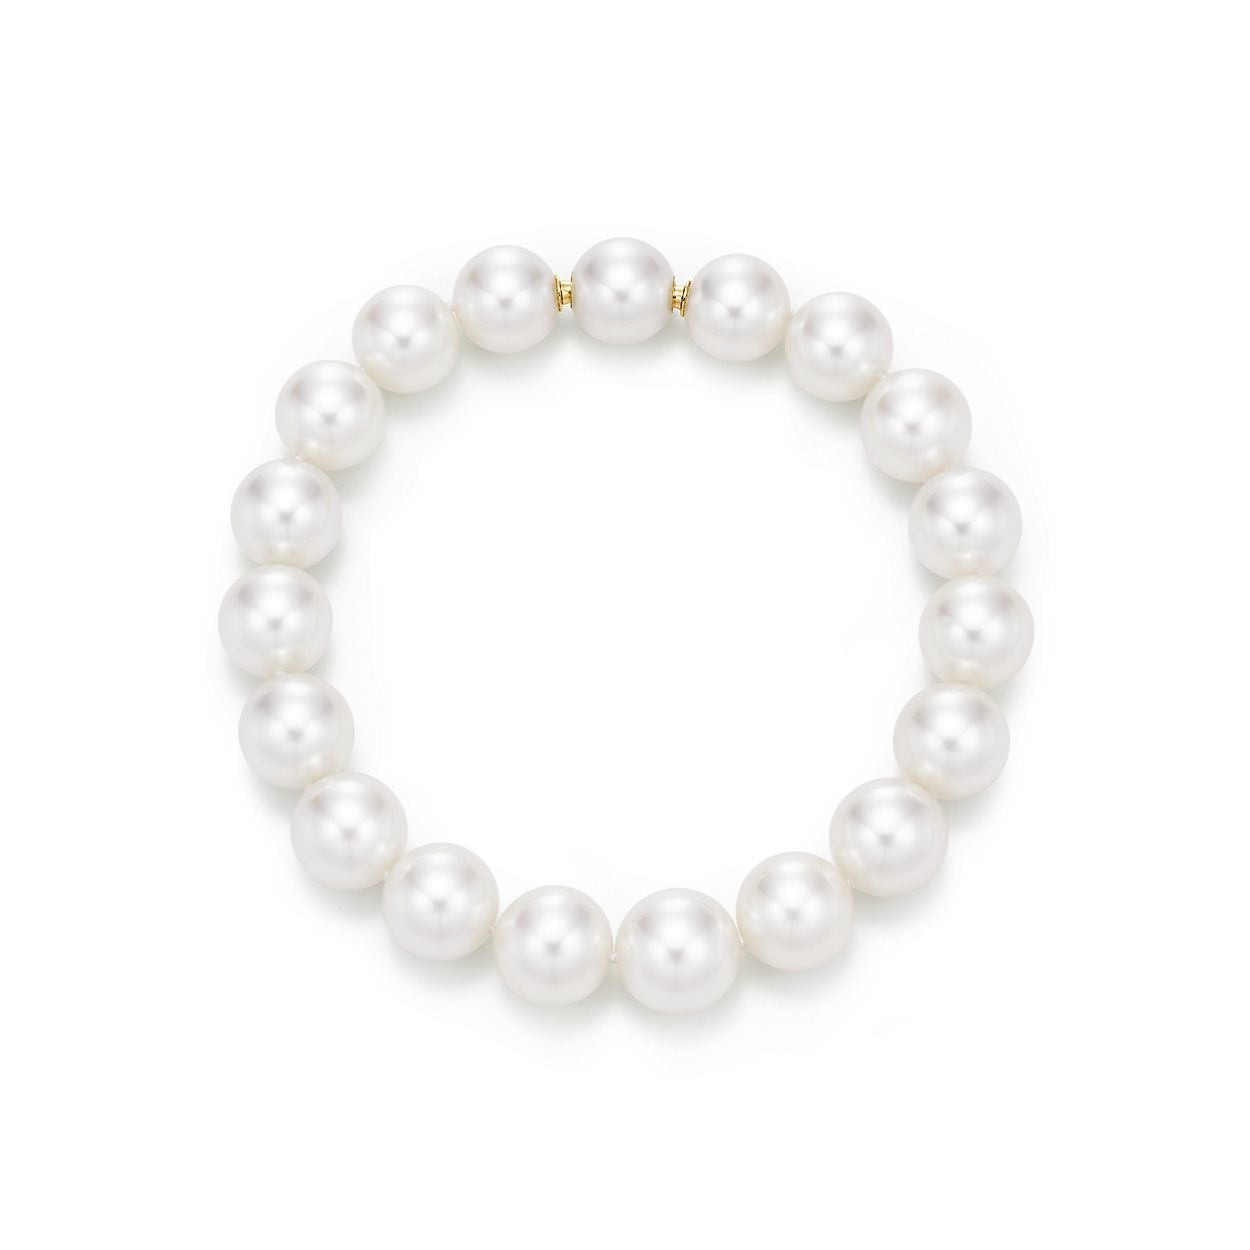 cultured bracelet of ed fmt noble id an constrain bracelets pearls wid fit south hei gold pearl jewelry with tiffany sea